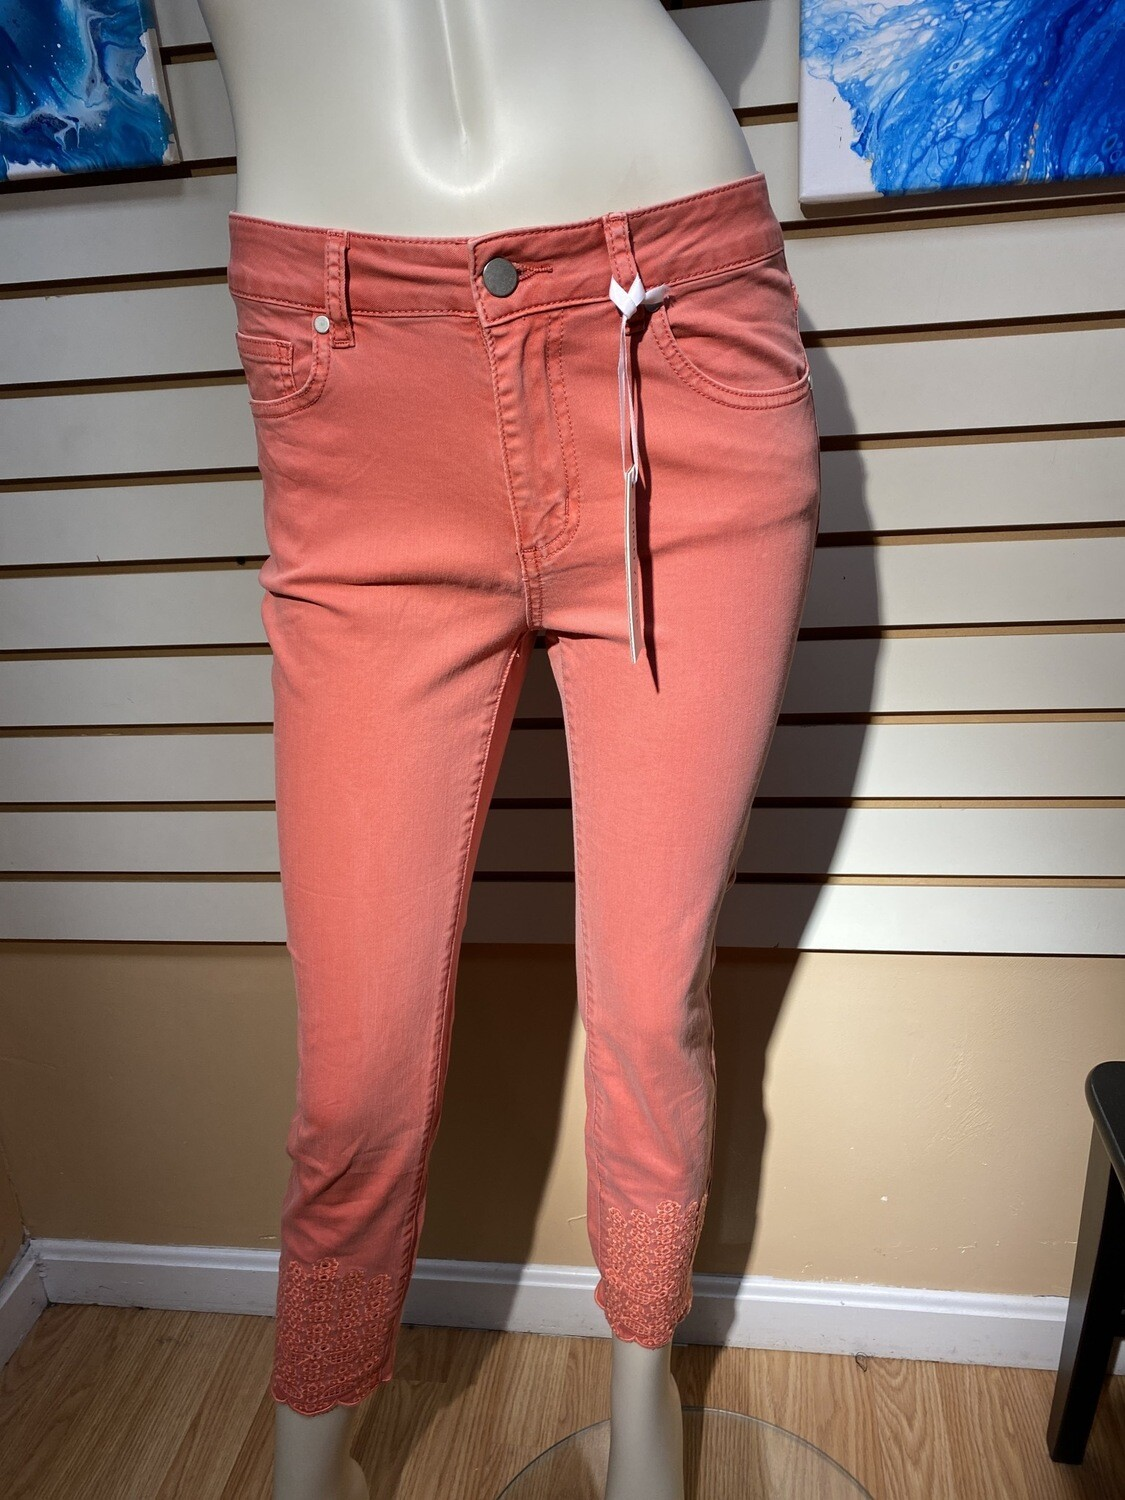 Major Deal Coco Club Washed Coral Capri Jean. Embroidered Hems 98% Cotton 2% Spandex Great Fit.